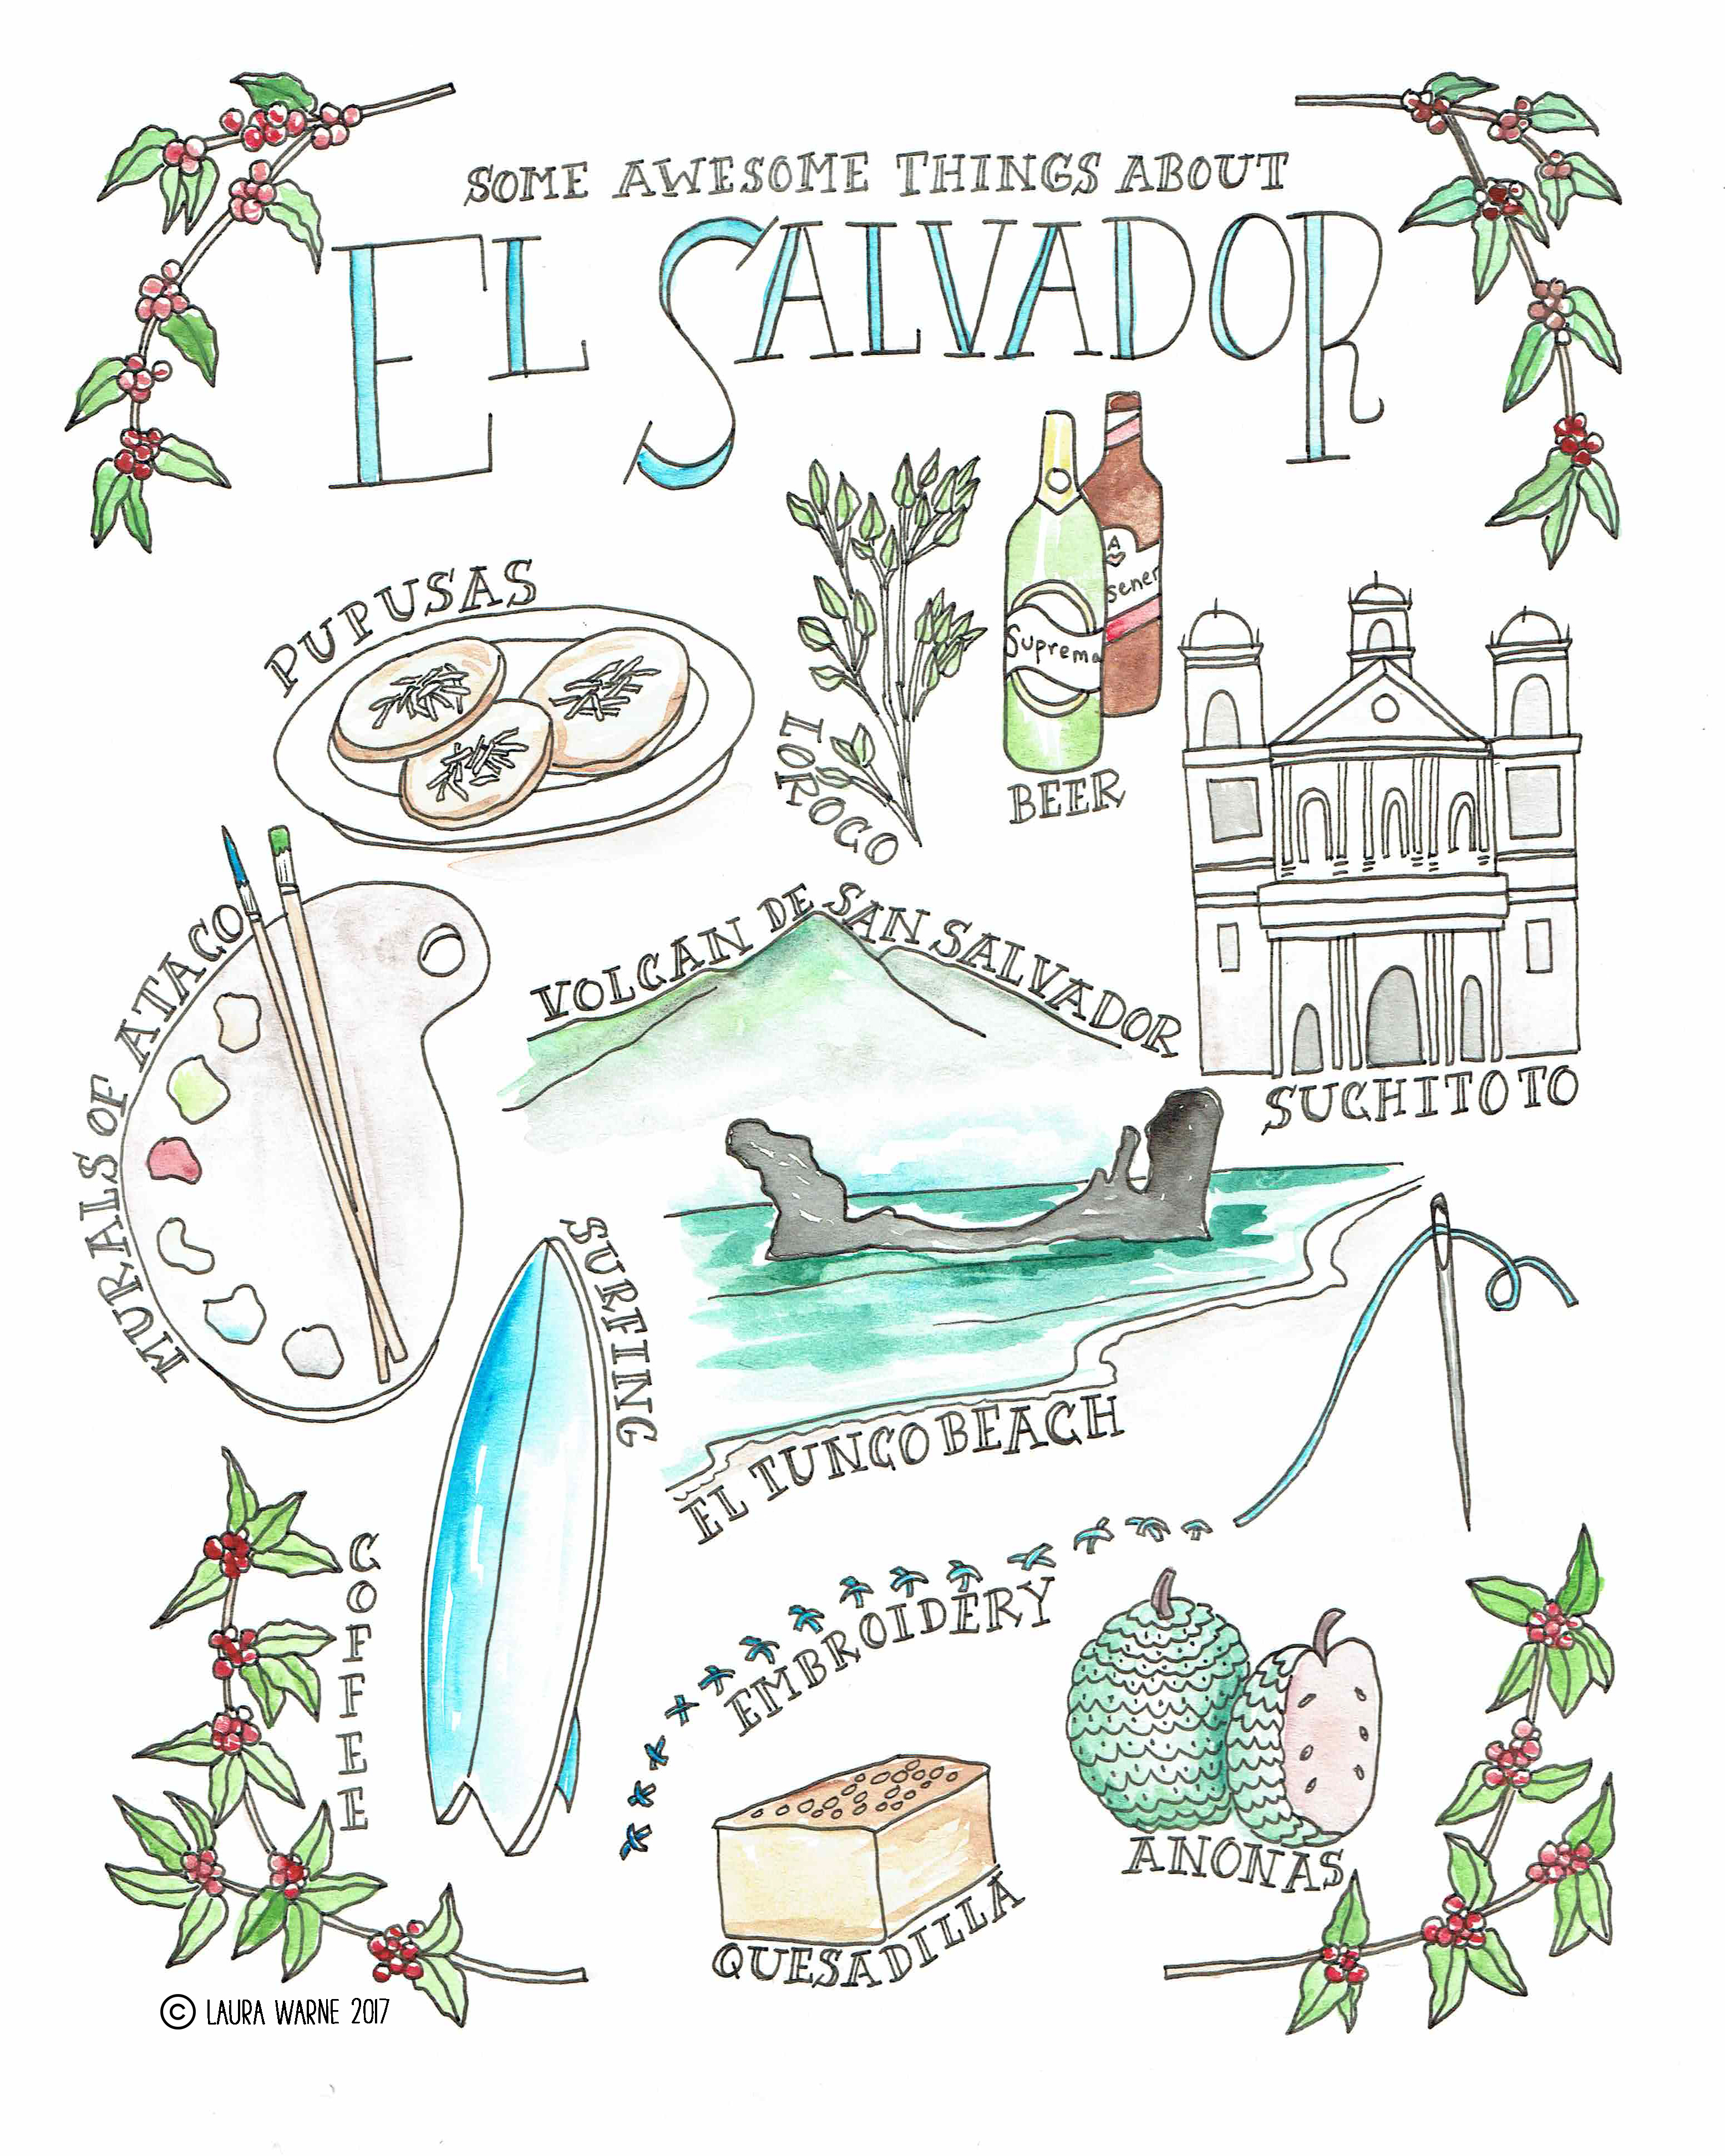 Awesome Things About El Salvador